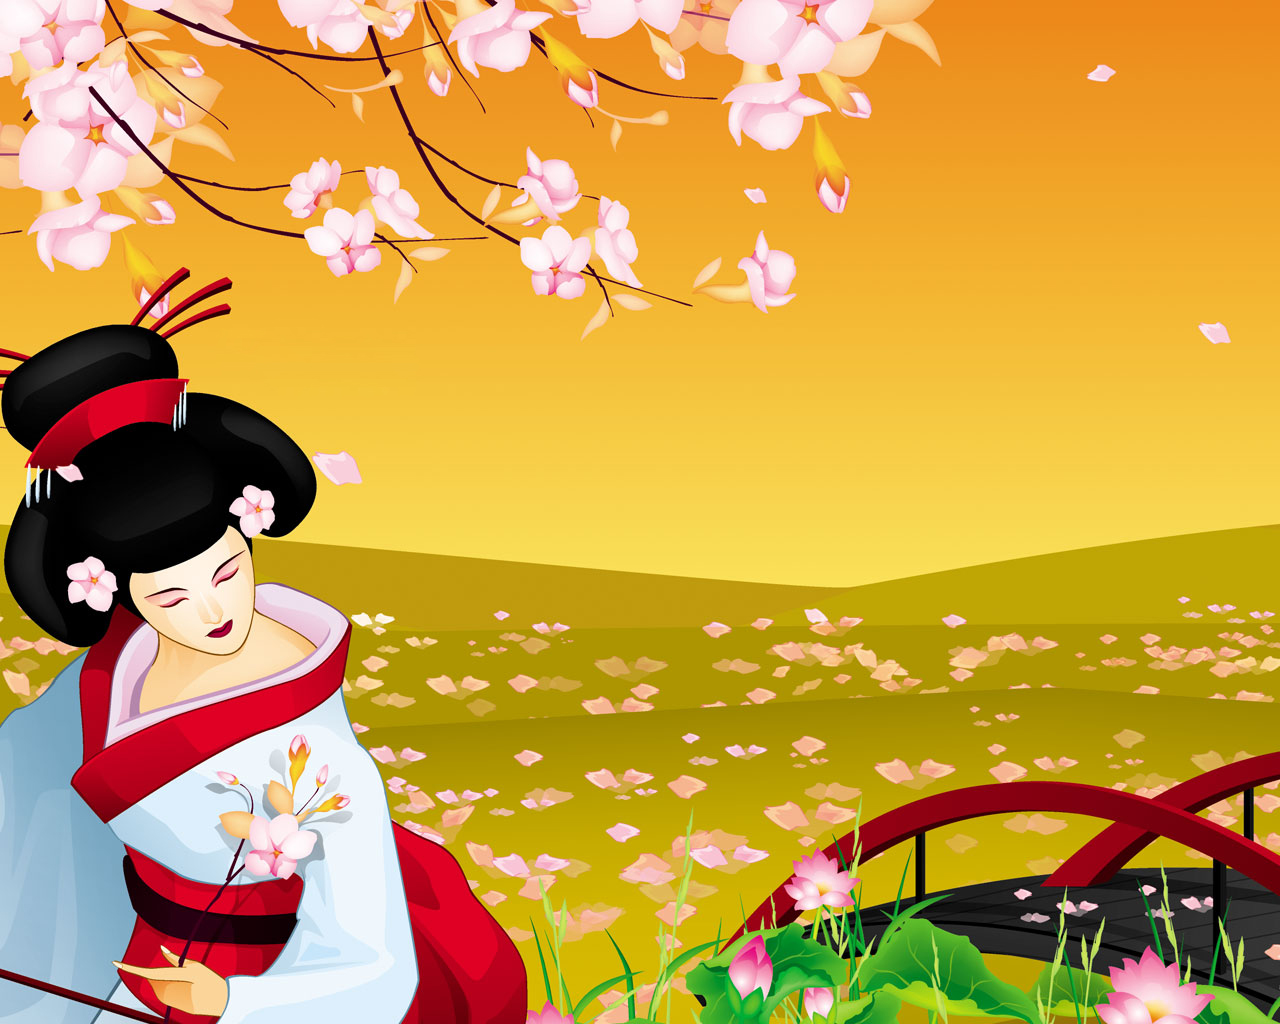 Japan Wallpapers and Images: Japanese Geisha Wallpapers and ...